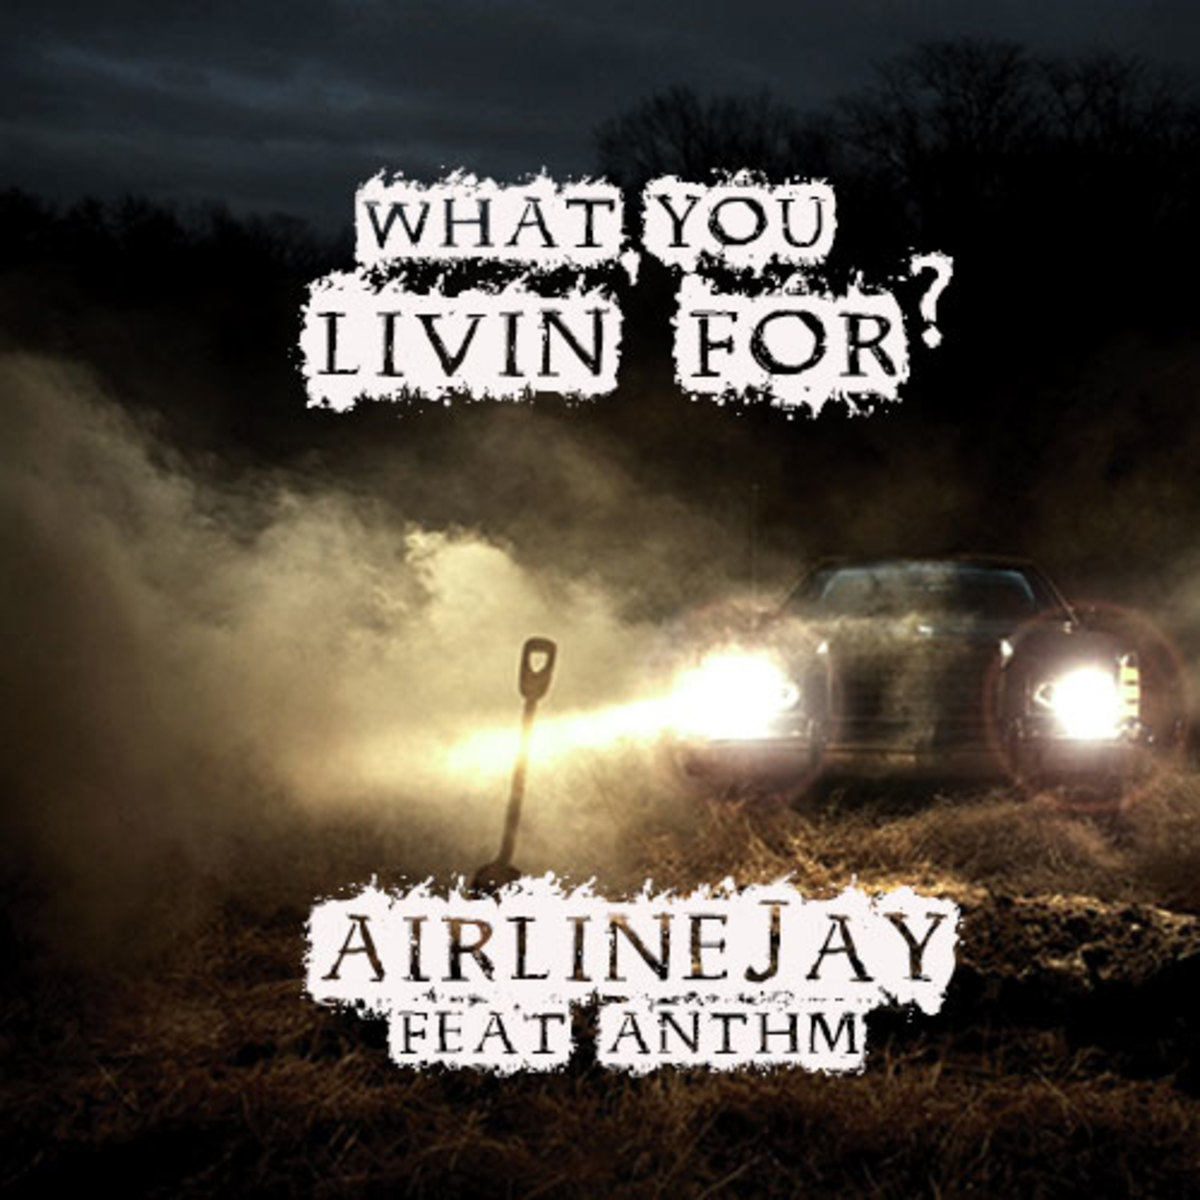 airlinejay-whatulivinfor.jpg